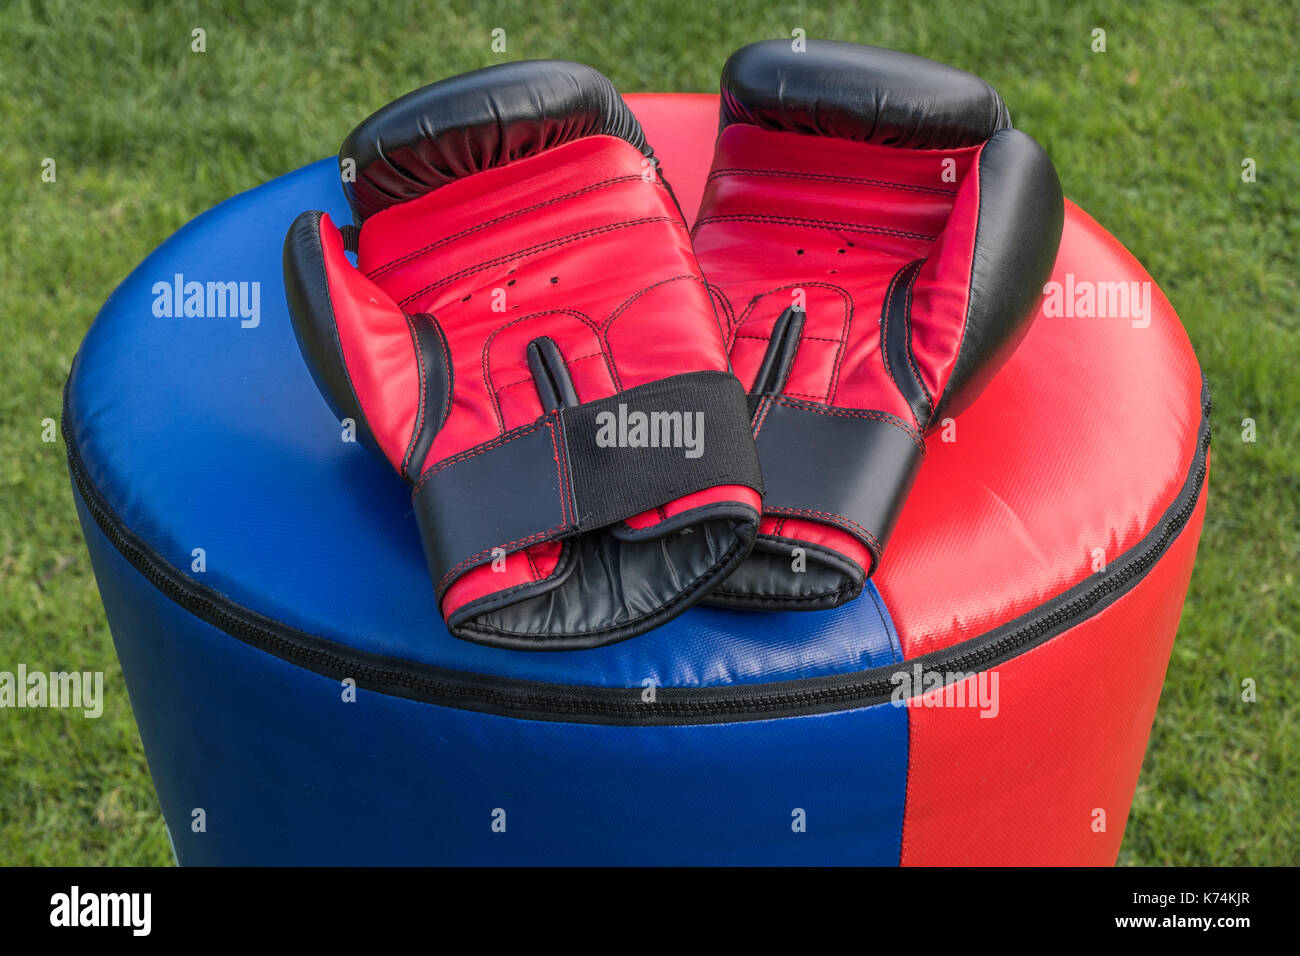 A pair of soft, padded, protective sparring gloves resting on a punchbag after a kickboxing fitness workout. Each glove is black and red. - Stock Image